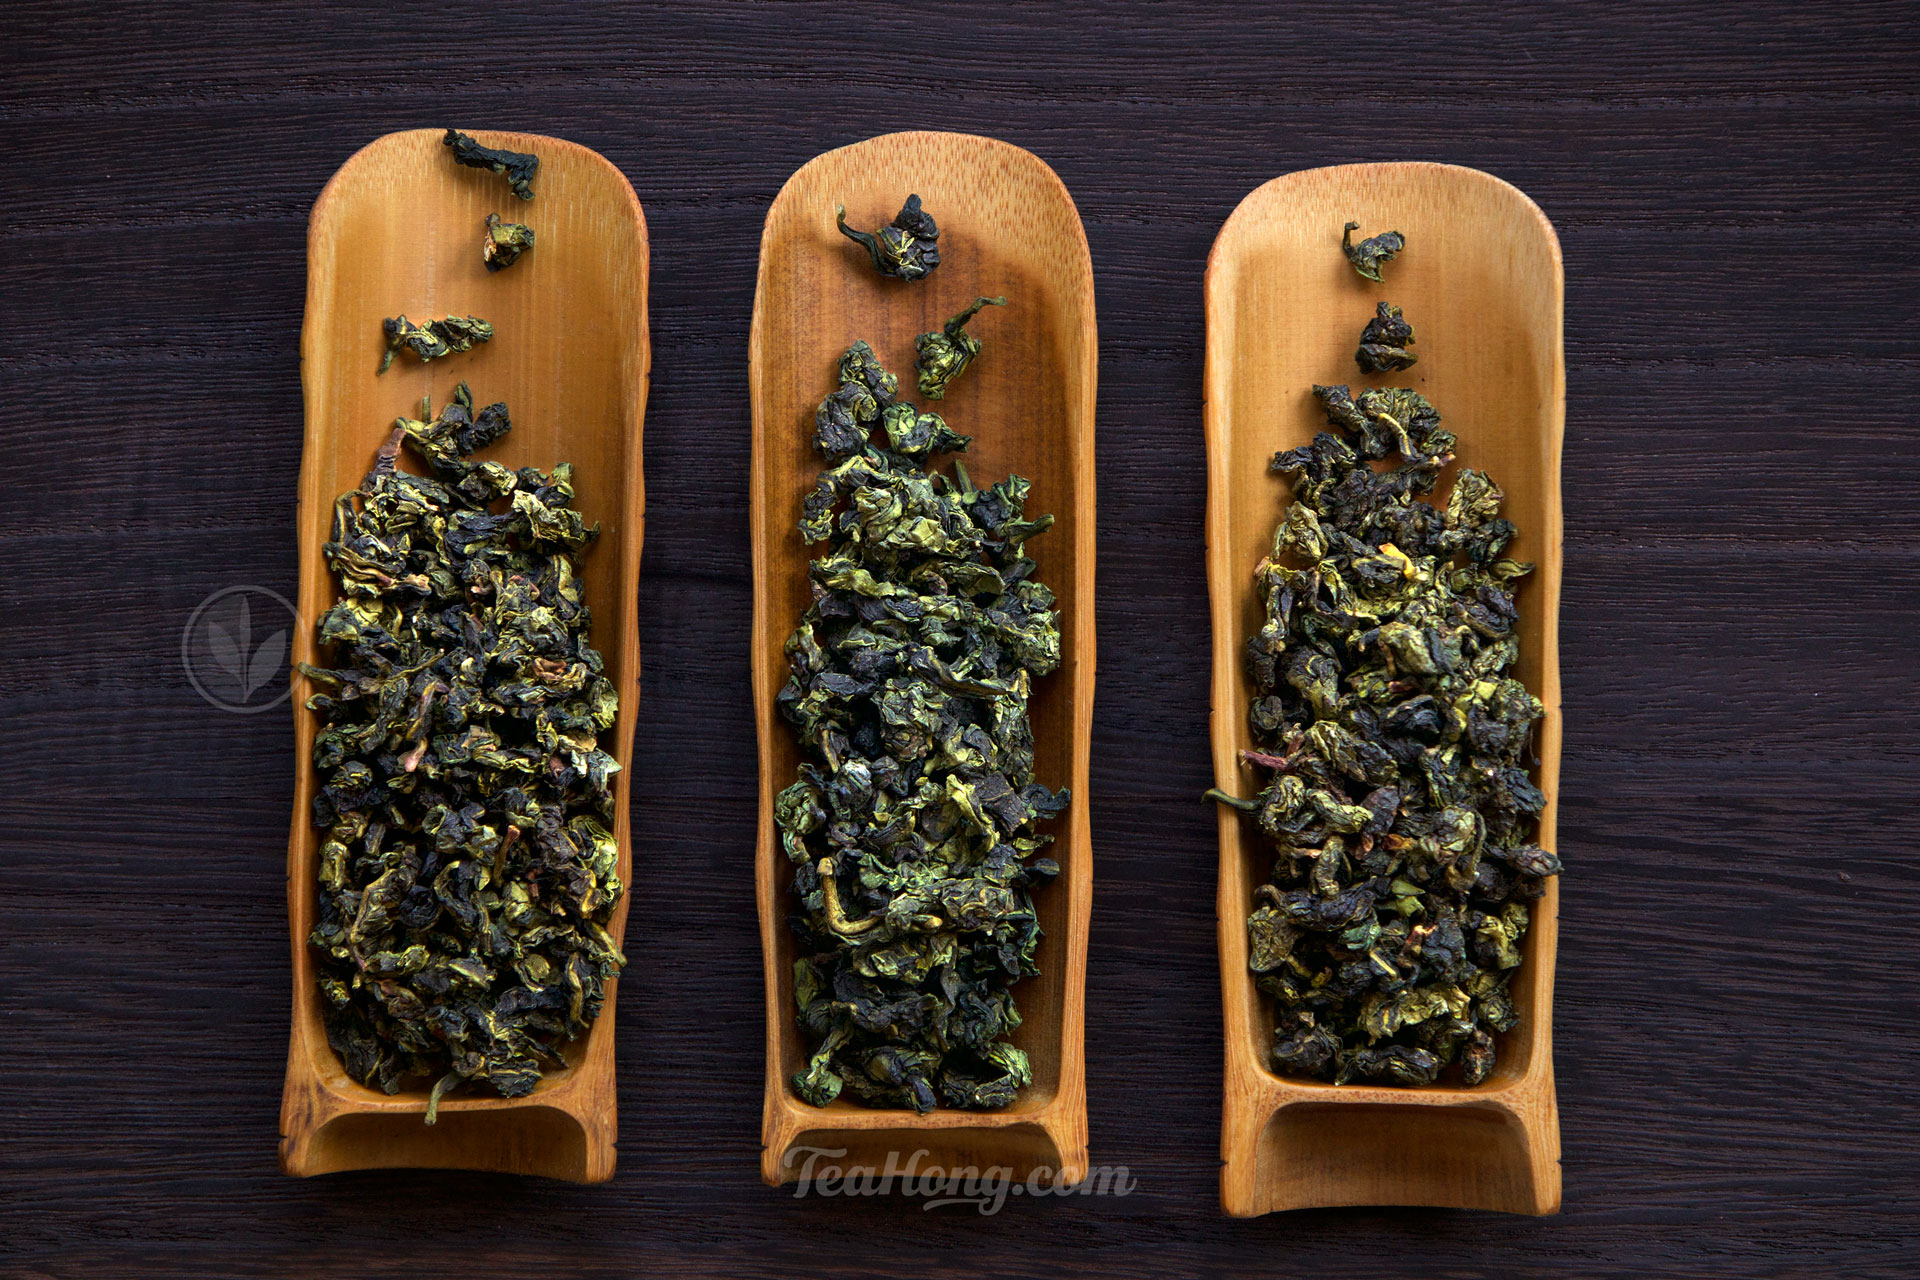 The leaves of three different Tieguanyins